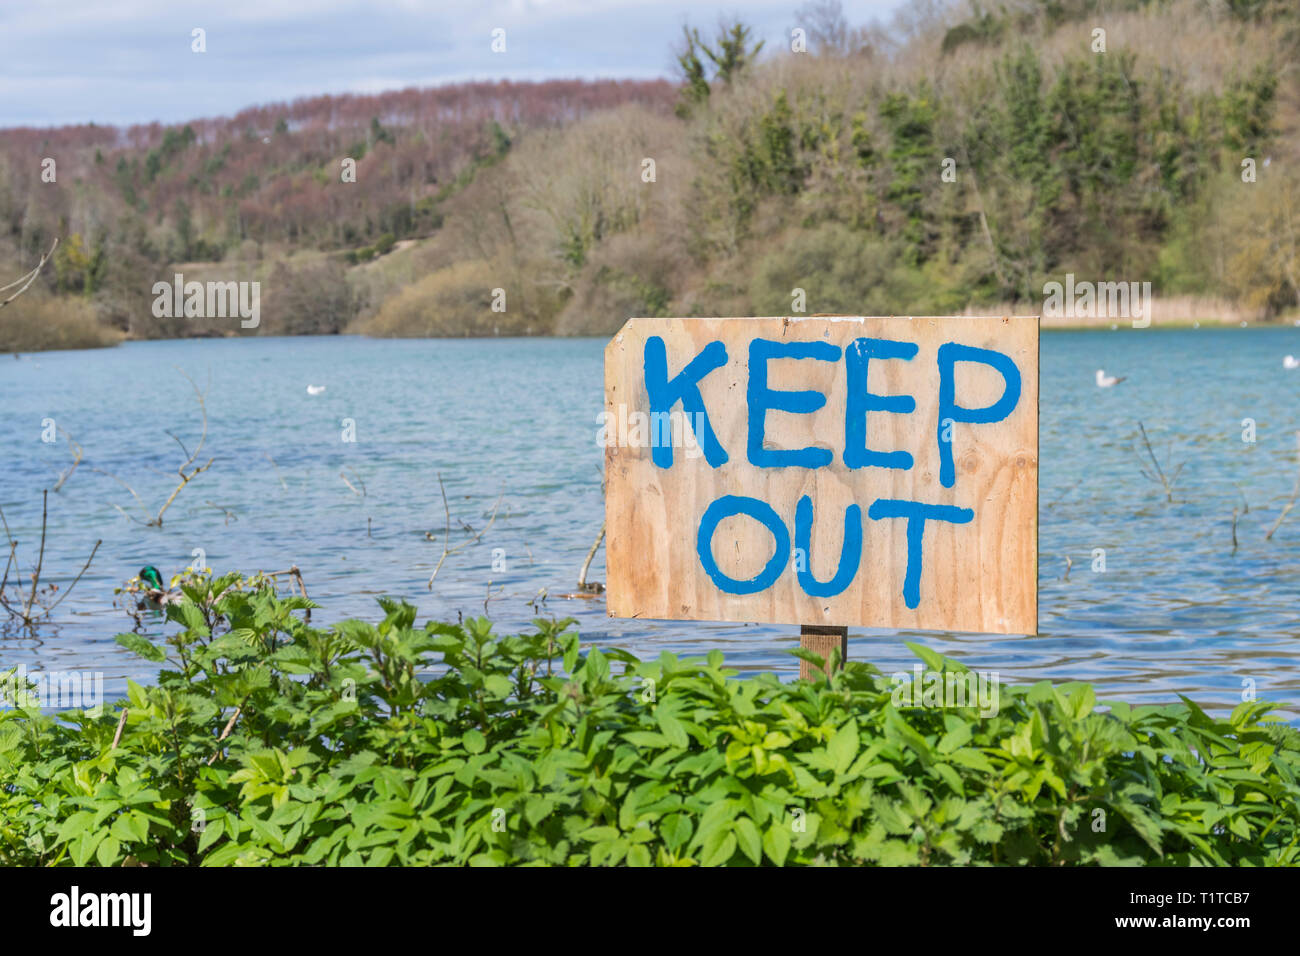 Keep Out sign hand written on a wooden sign stuck in the ground by a lake. - Stock Image